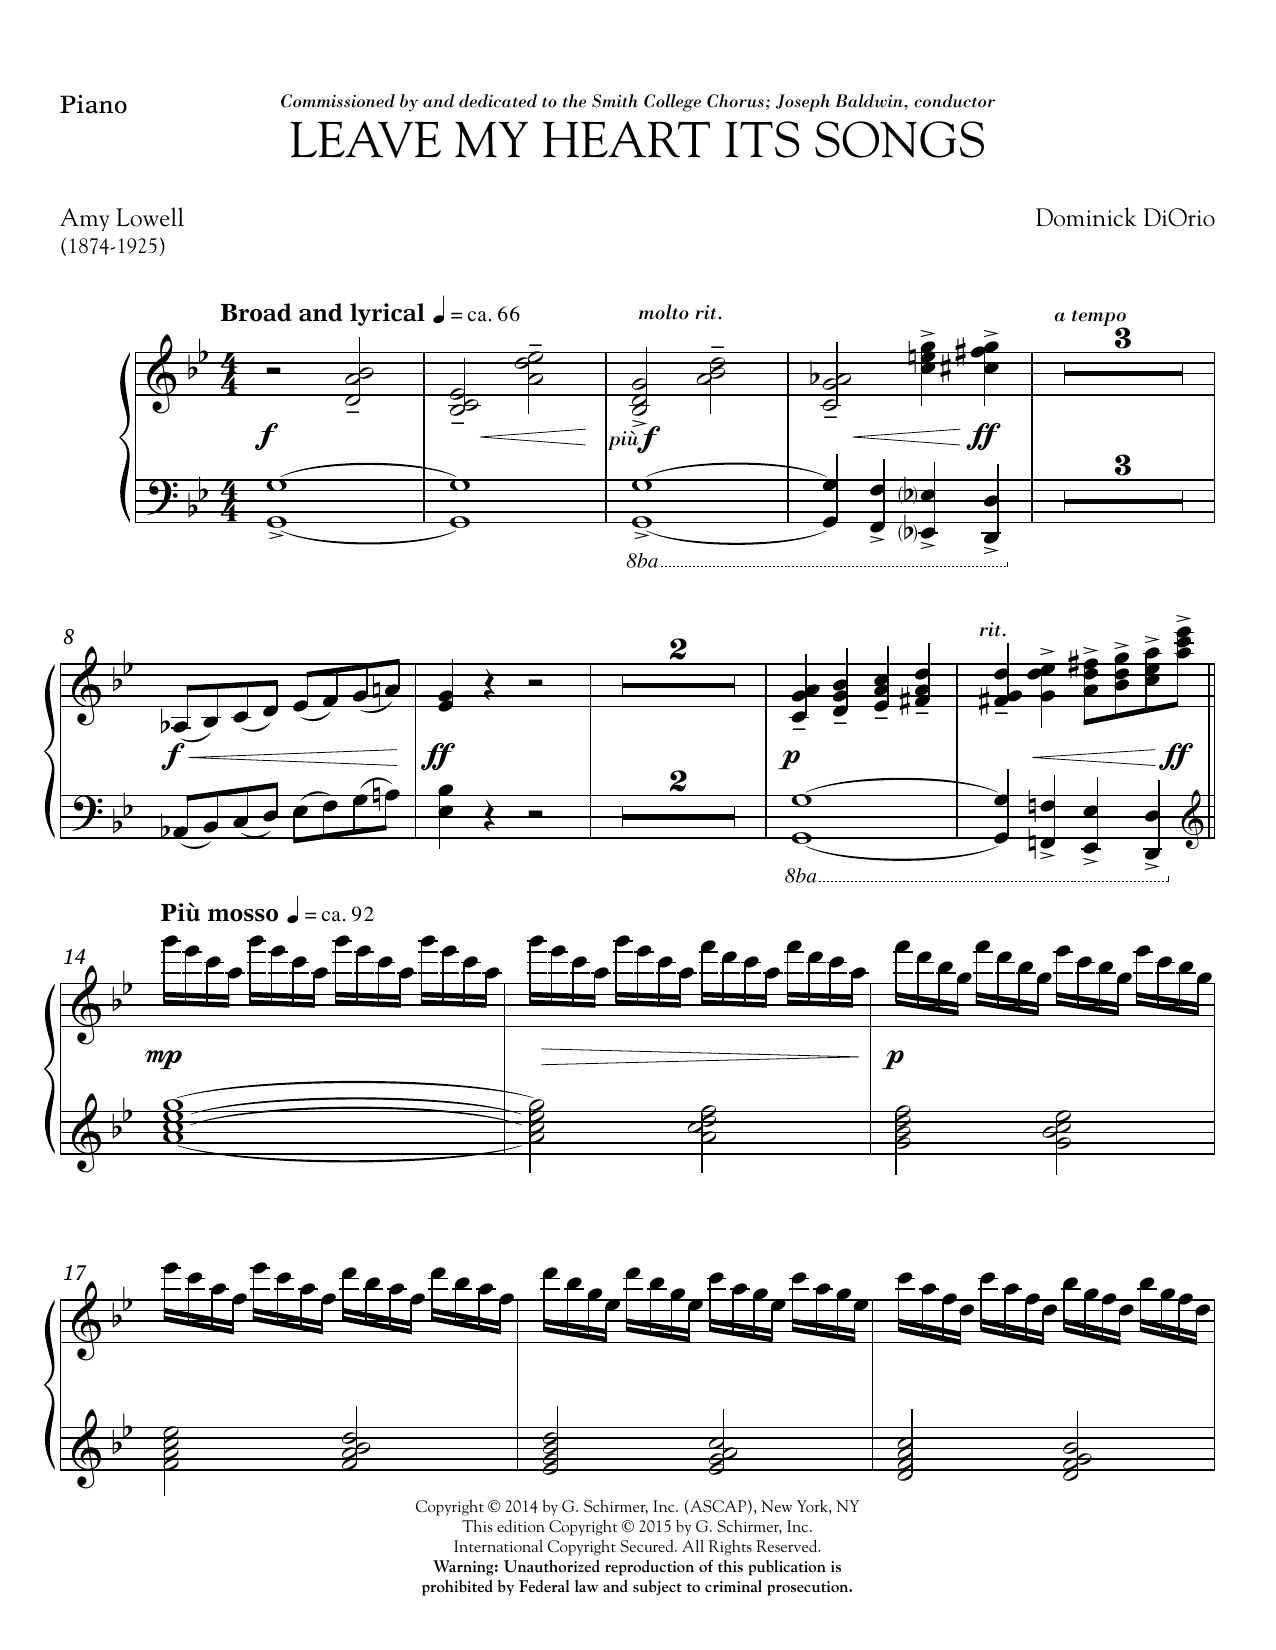 Leave My Heart Its Songs - Piano Sheet Music